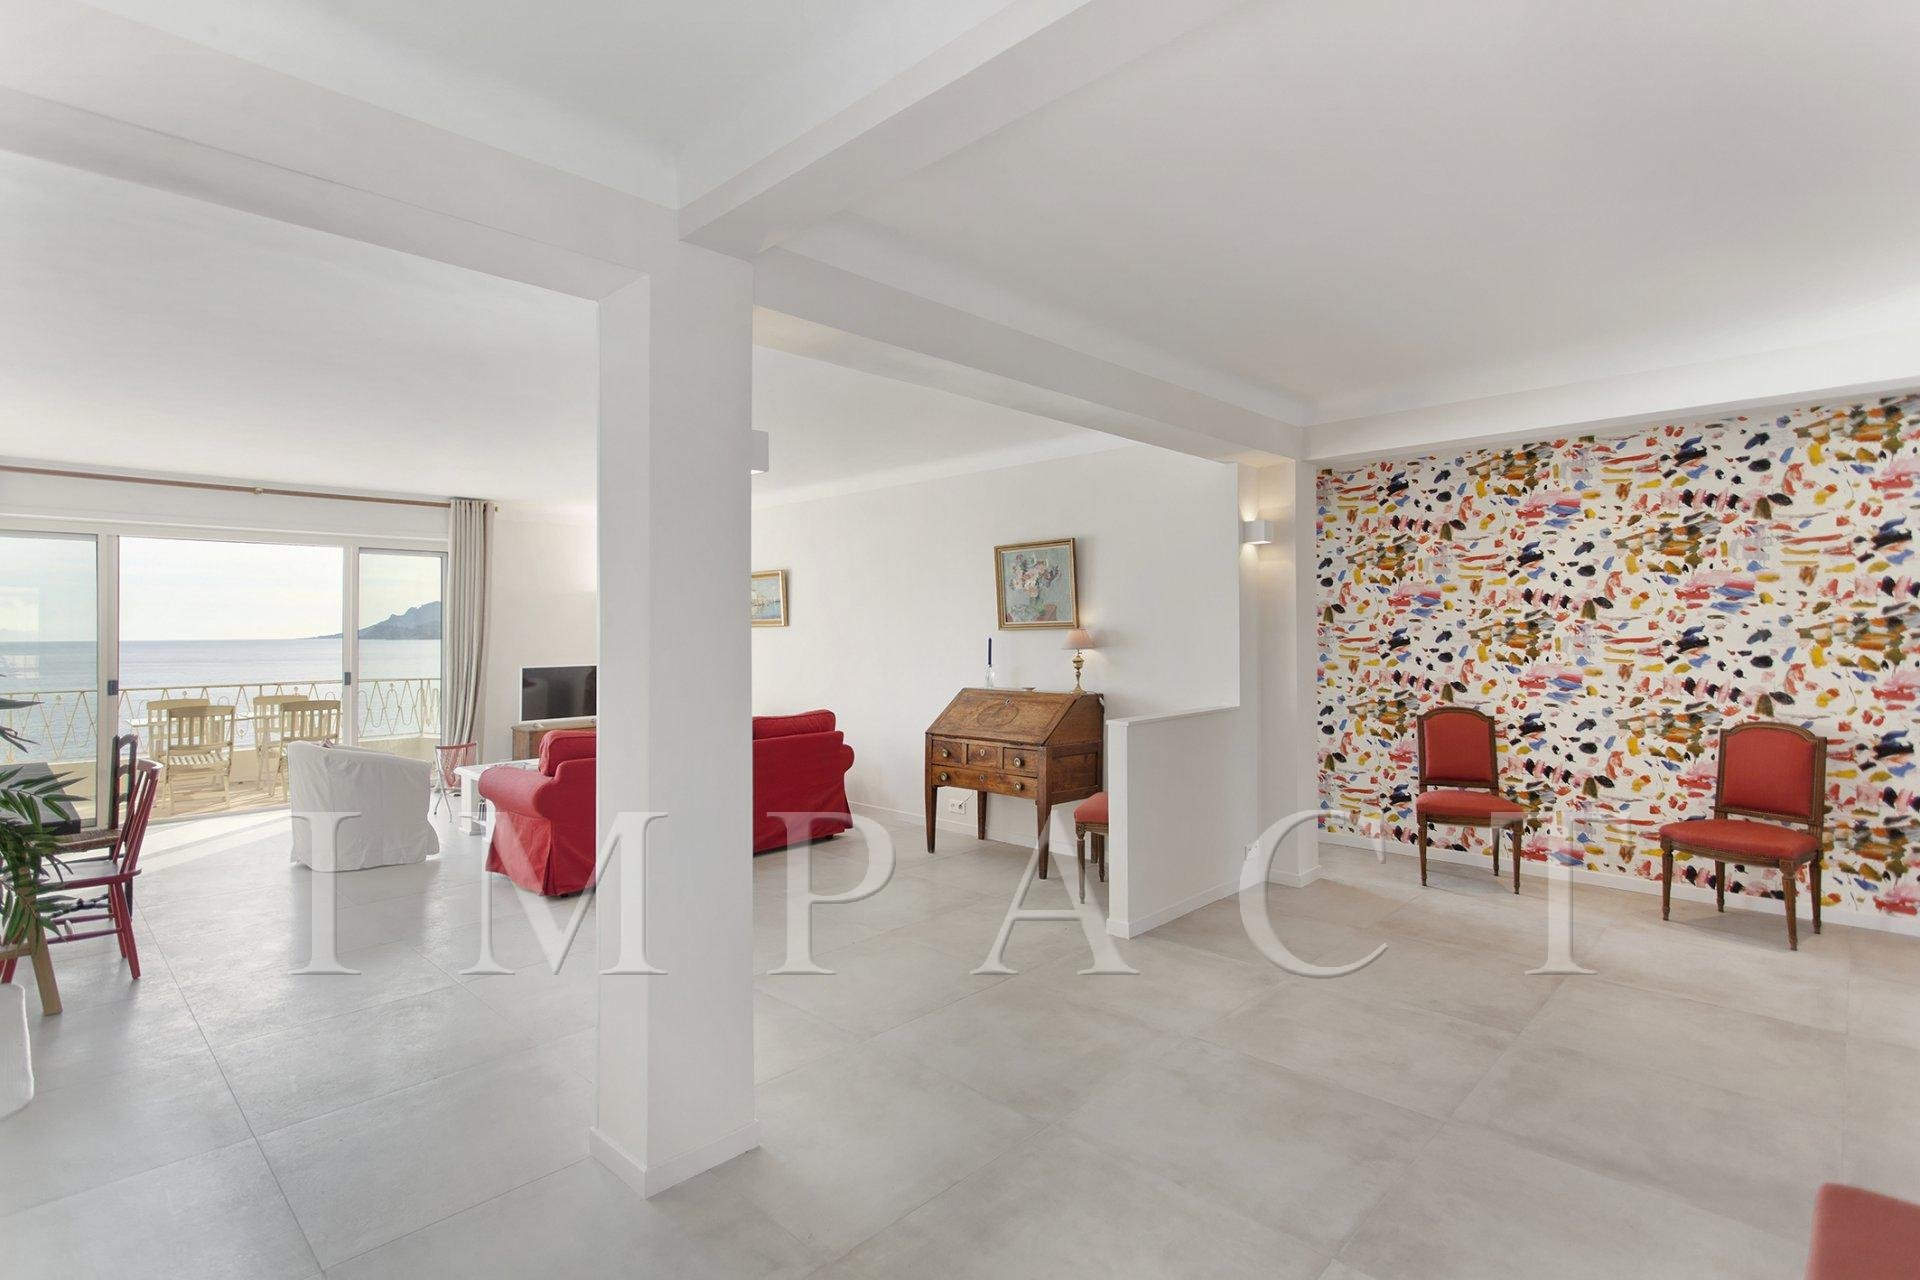 3 bedrooms apartment to rent in Cannes.